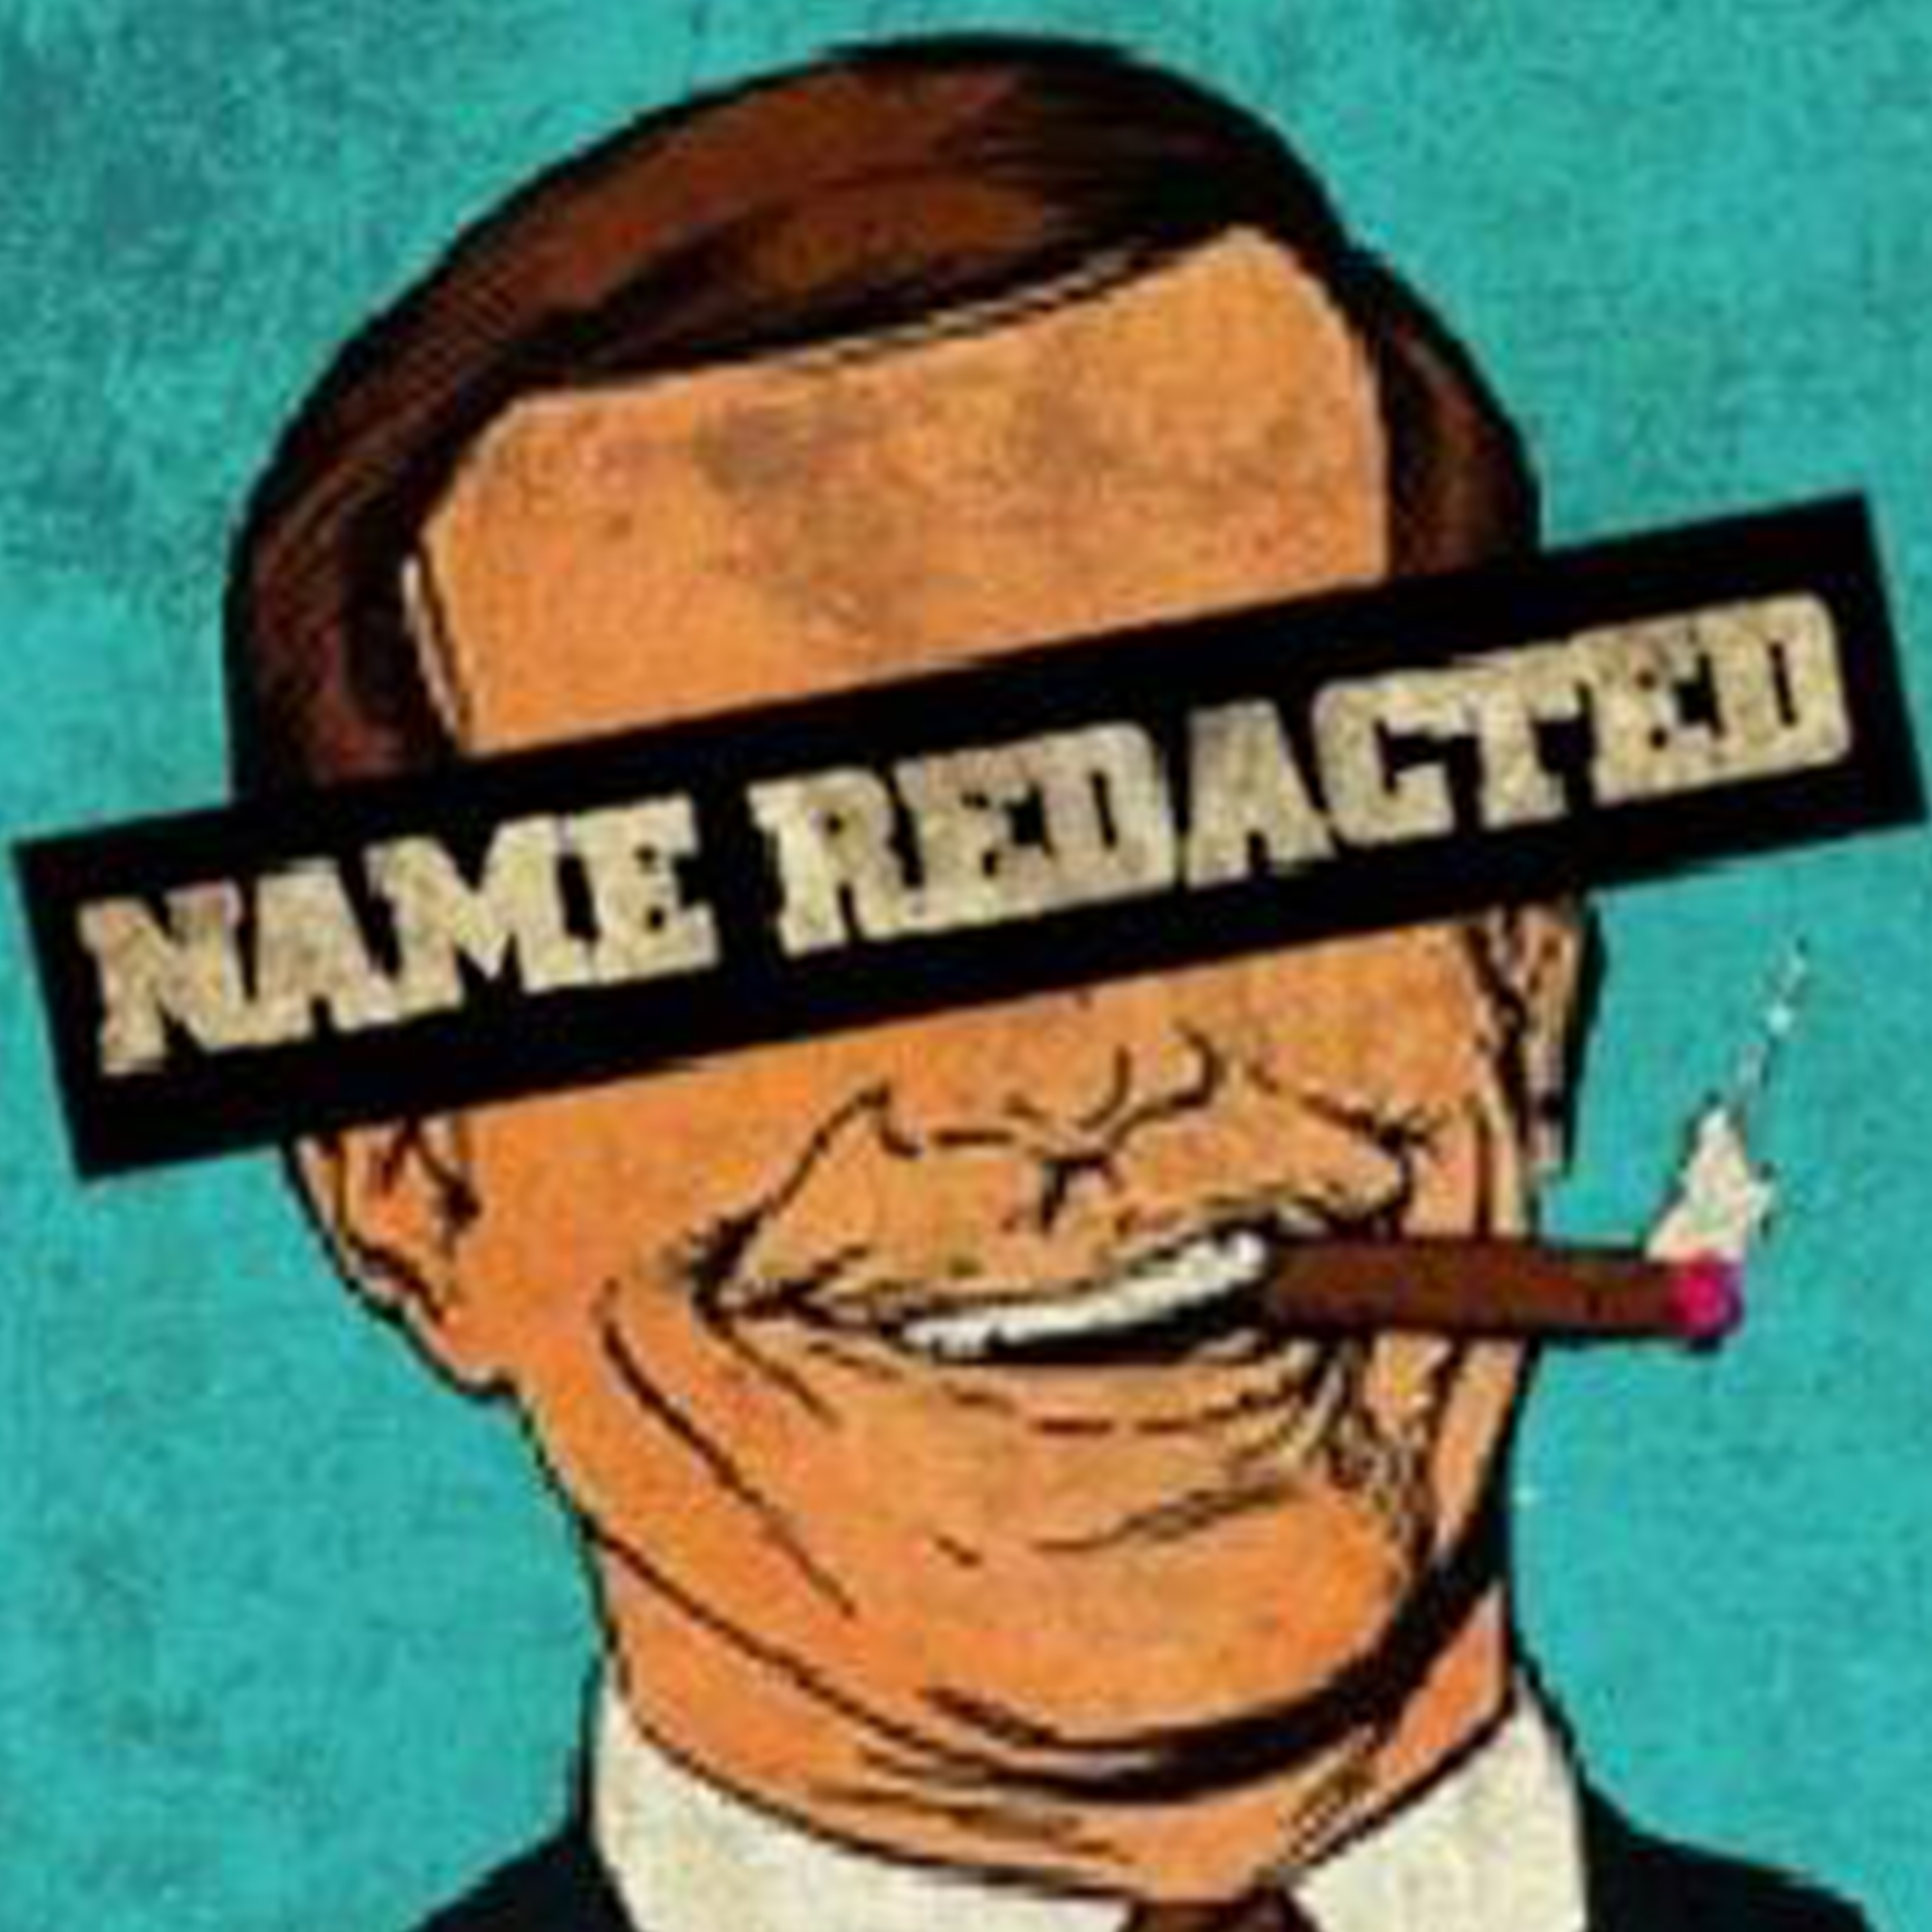 Name Redacted